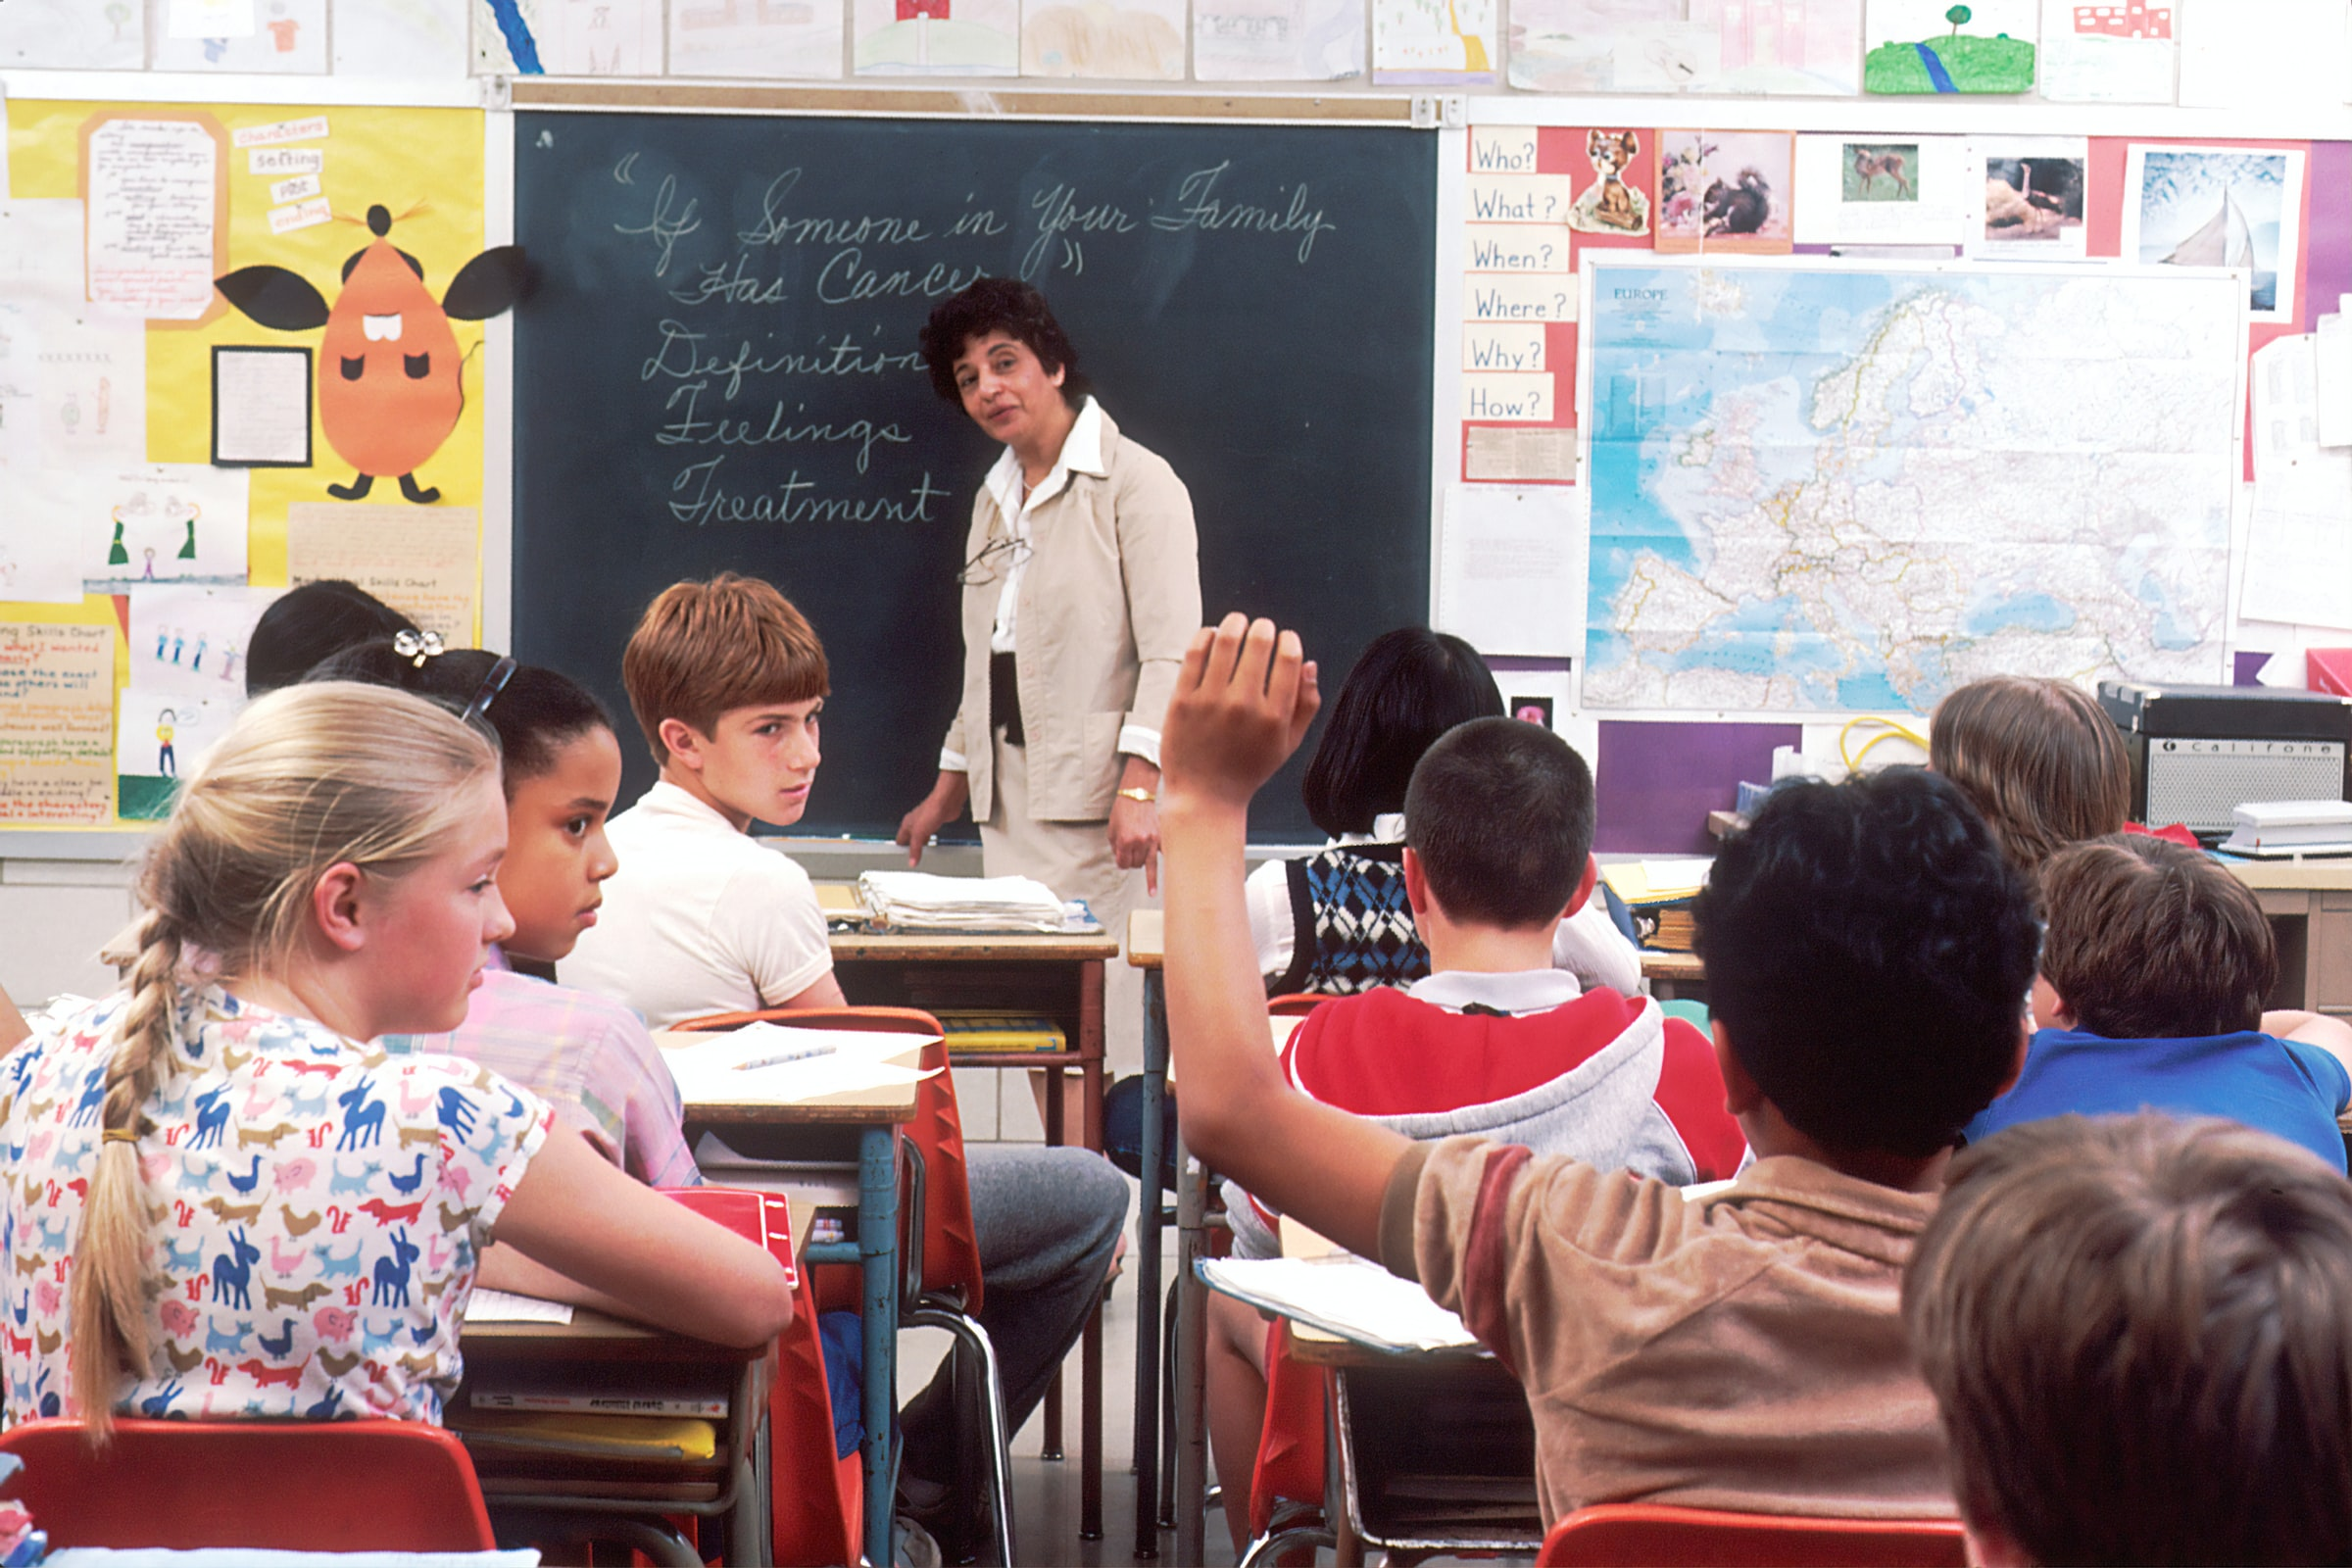 Traditional Writing Instruction Isn't Working. Student-Centered Writing May Be The Answer.